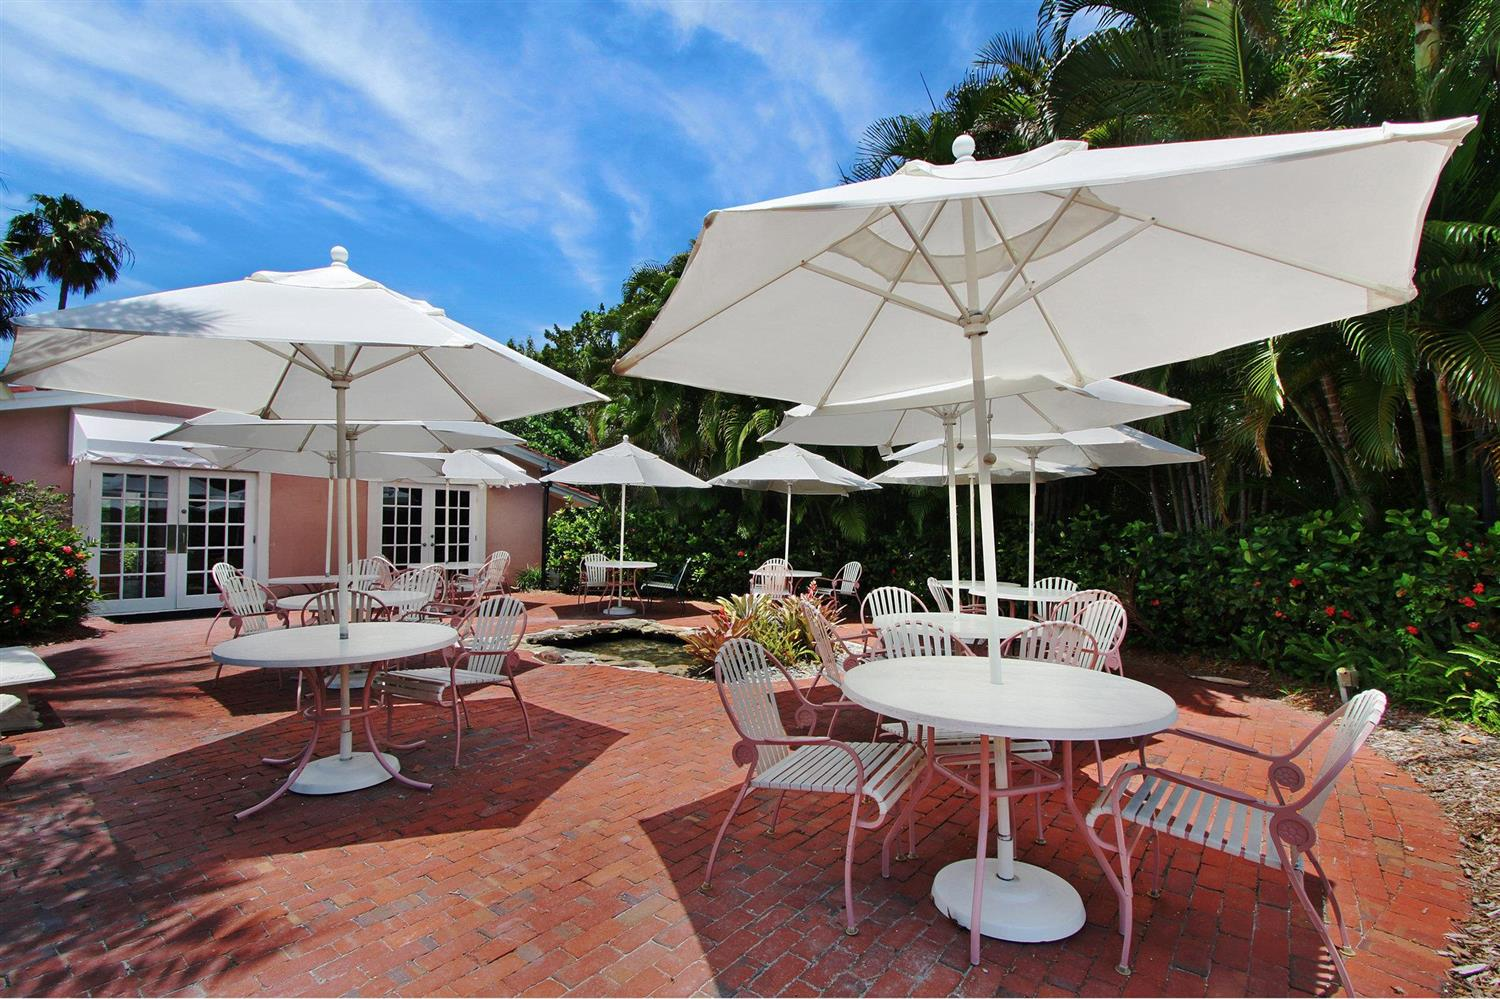 Exterior view - Song of the Sea Inn Sanibel Island